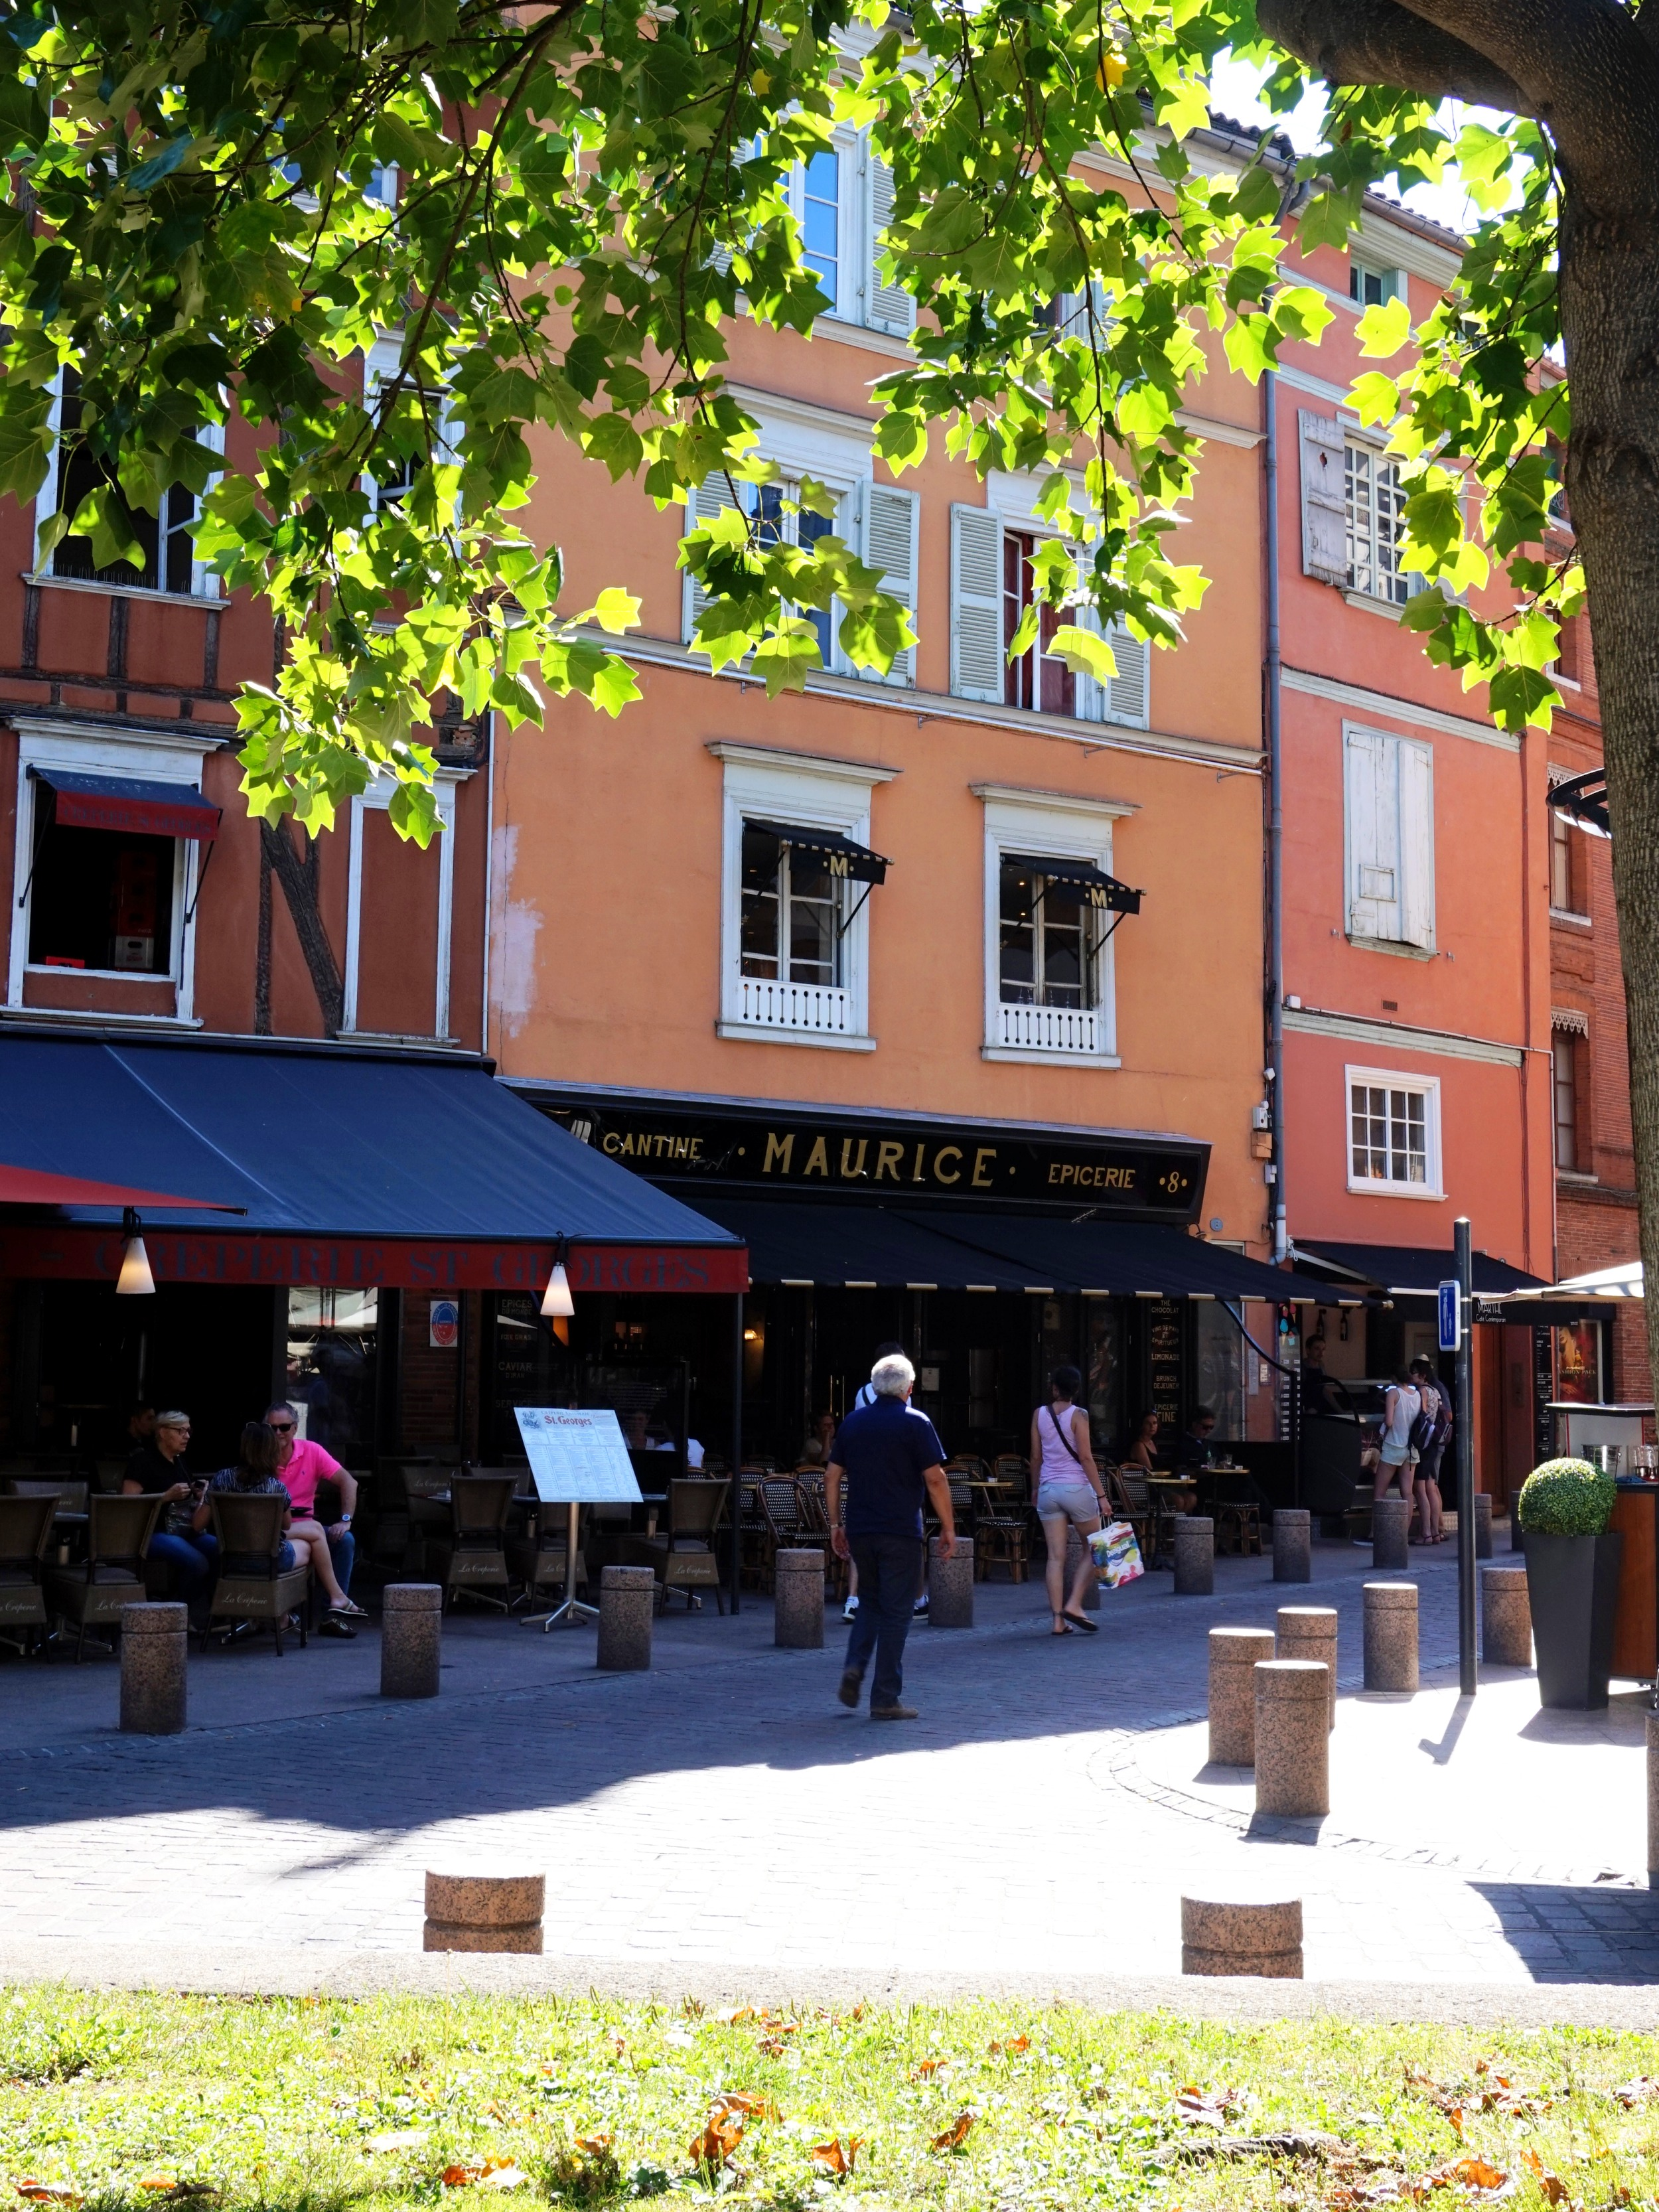 Balade-Toulouse-St-Etienne-3